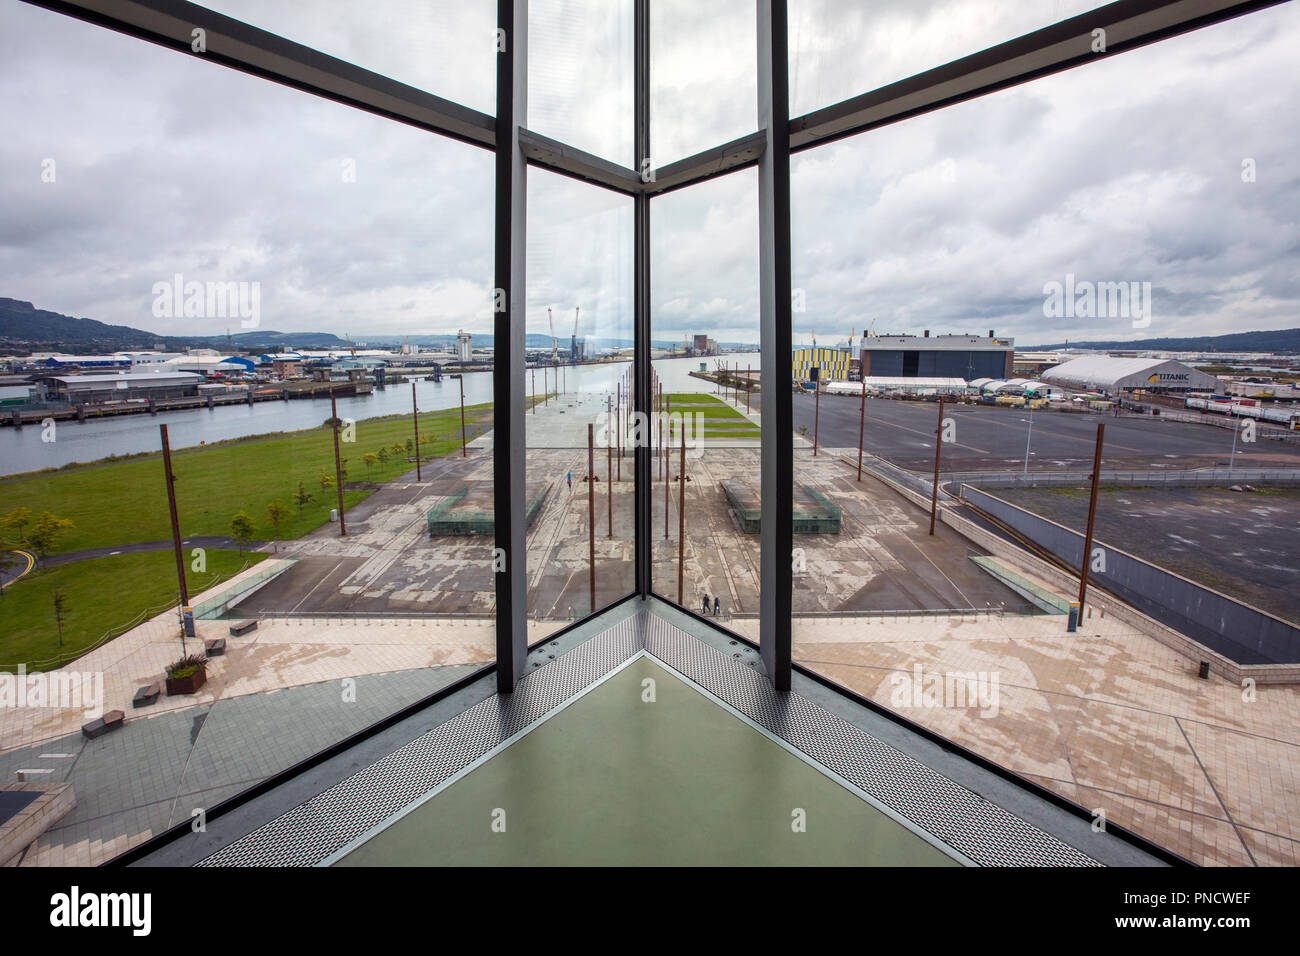 Belfast, Northern Ireland - August 23rd 2018: View from the Titanic Belfast Museum, of the slipways on which the Titanic and Olympic were built and fi Stock Photo